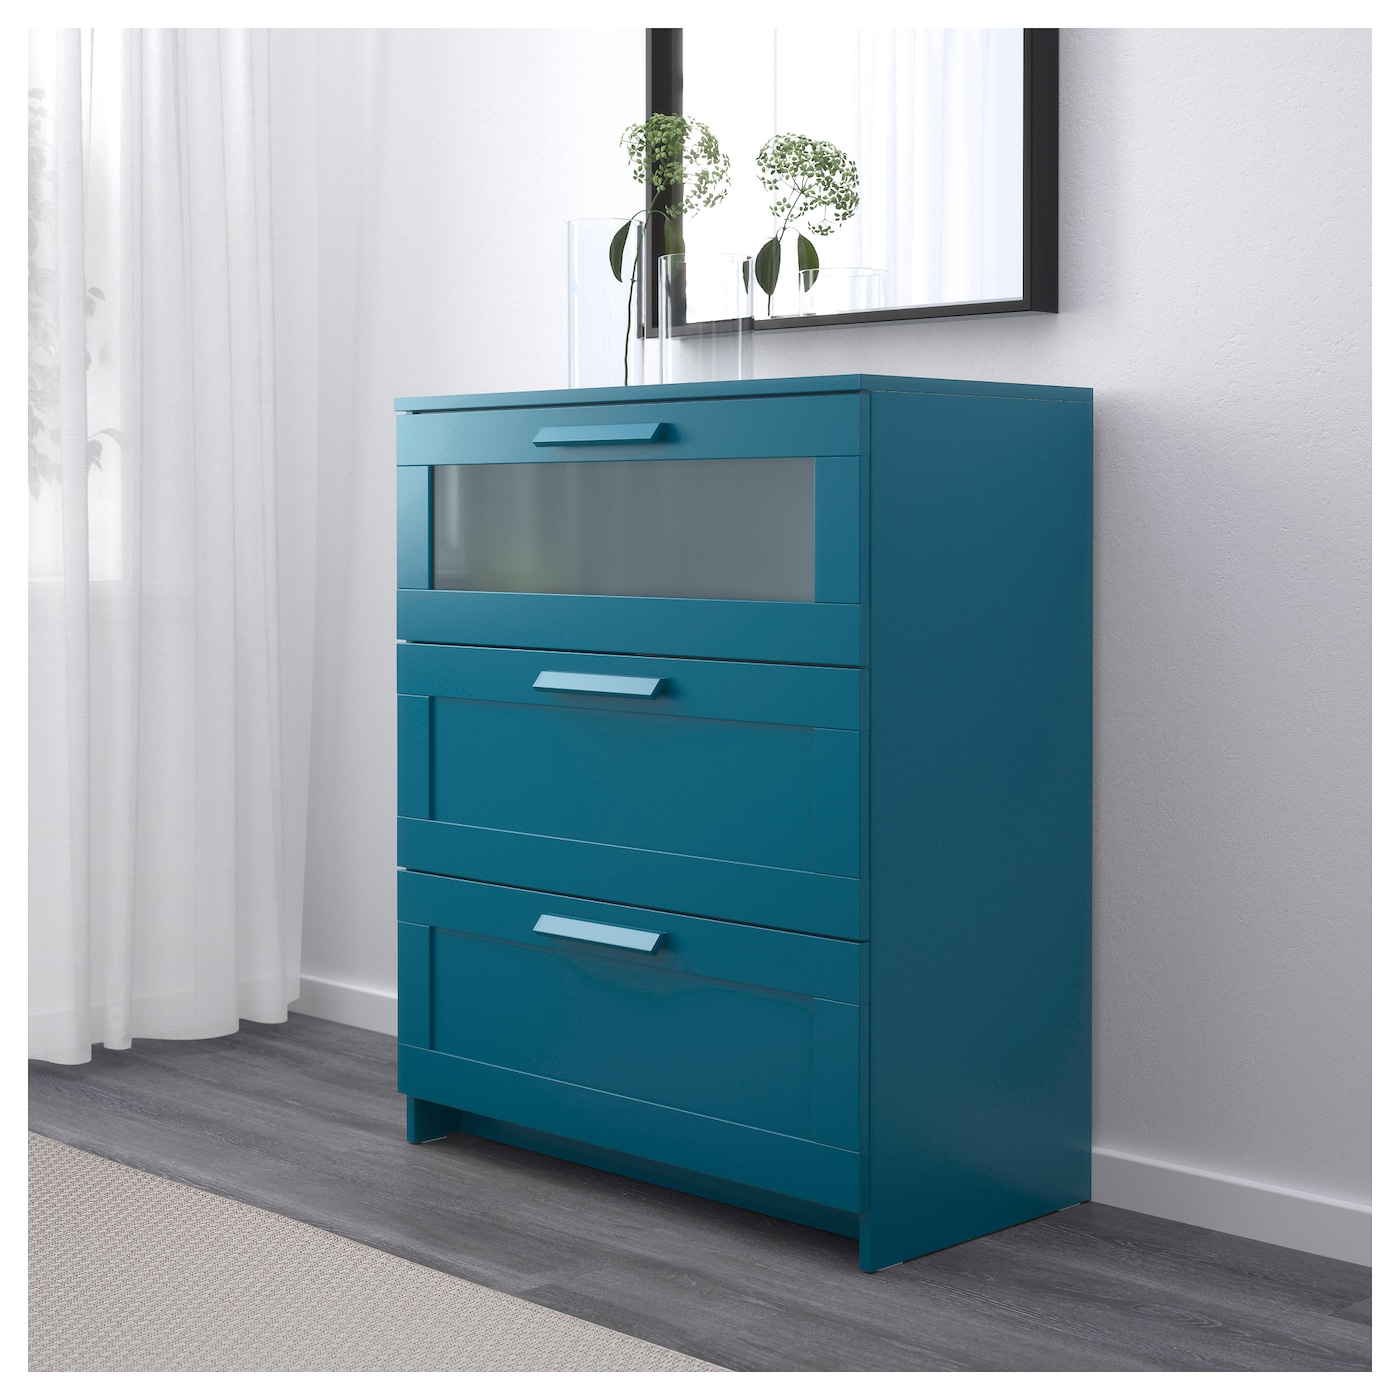 brimnes chest of 3 drawers dark green blue frosted glass 78x95 cm ikea. Black Bedroom Furniture Sets. Home Design Ideas